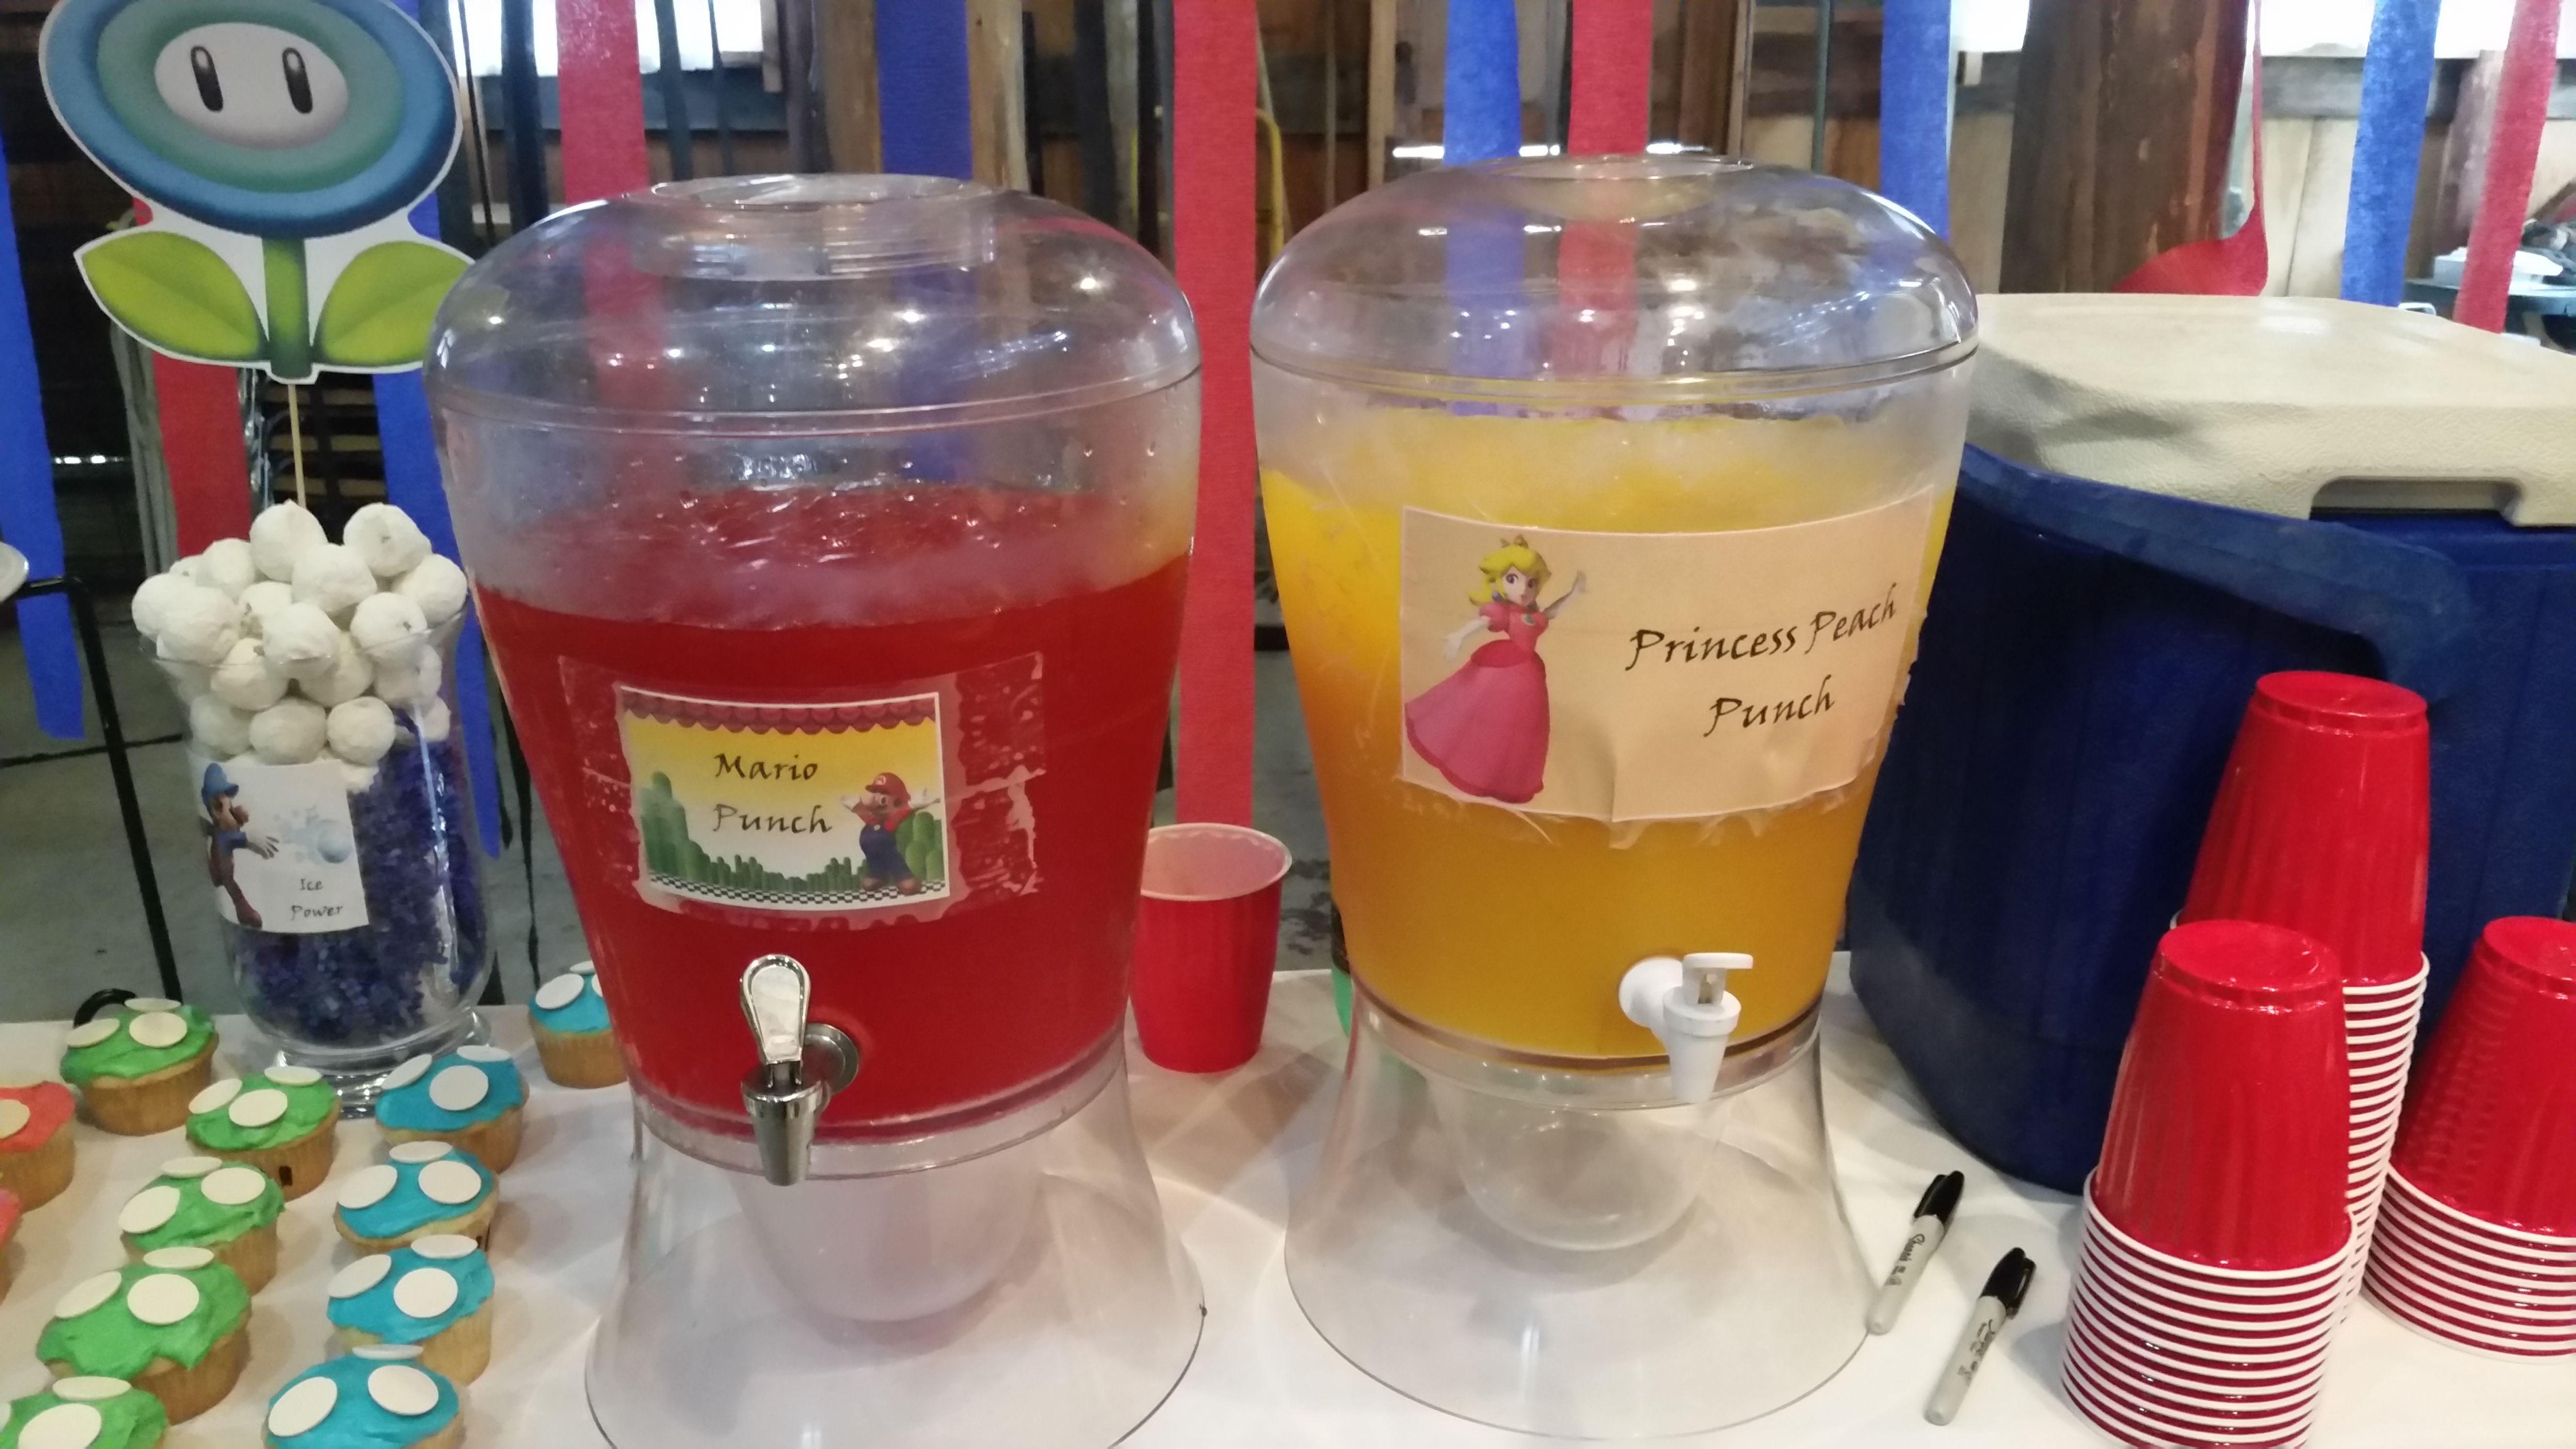 Super Mario Brothers Party. Mario Punch and Princess Peach Punch. The Princes Peach Punch is actually Mango juice cocktail from Costco mixed with 7up.